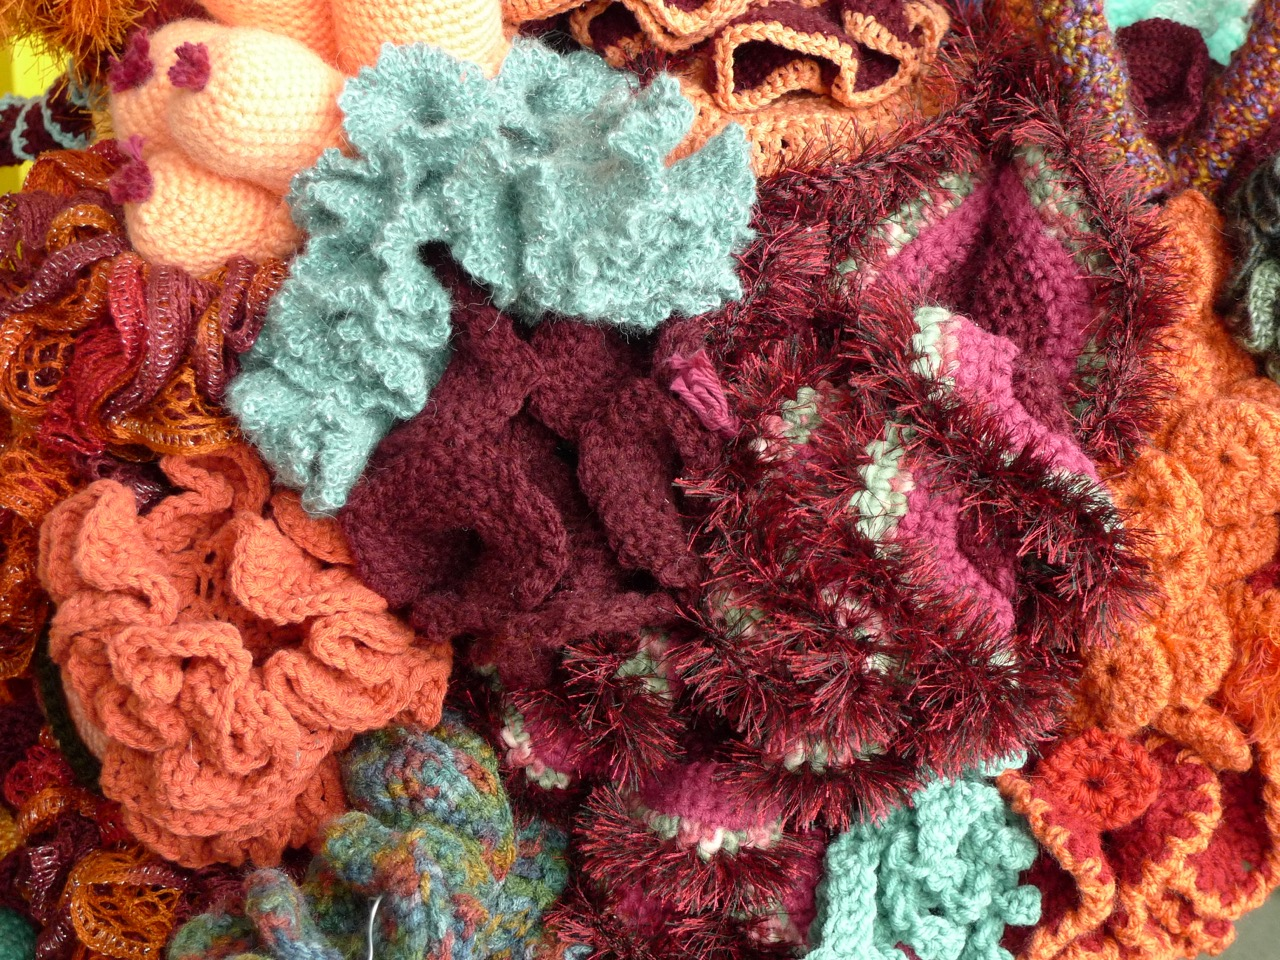 Uc Santa Cruz Satellite Reef Part Of The Worldwide Crochet Coral